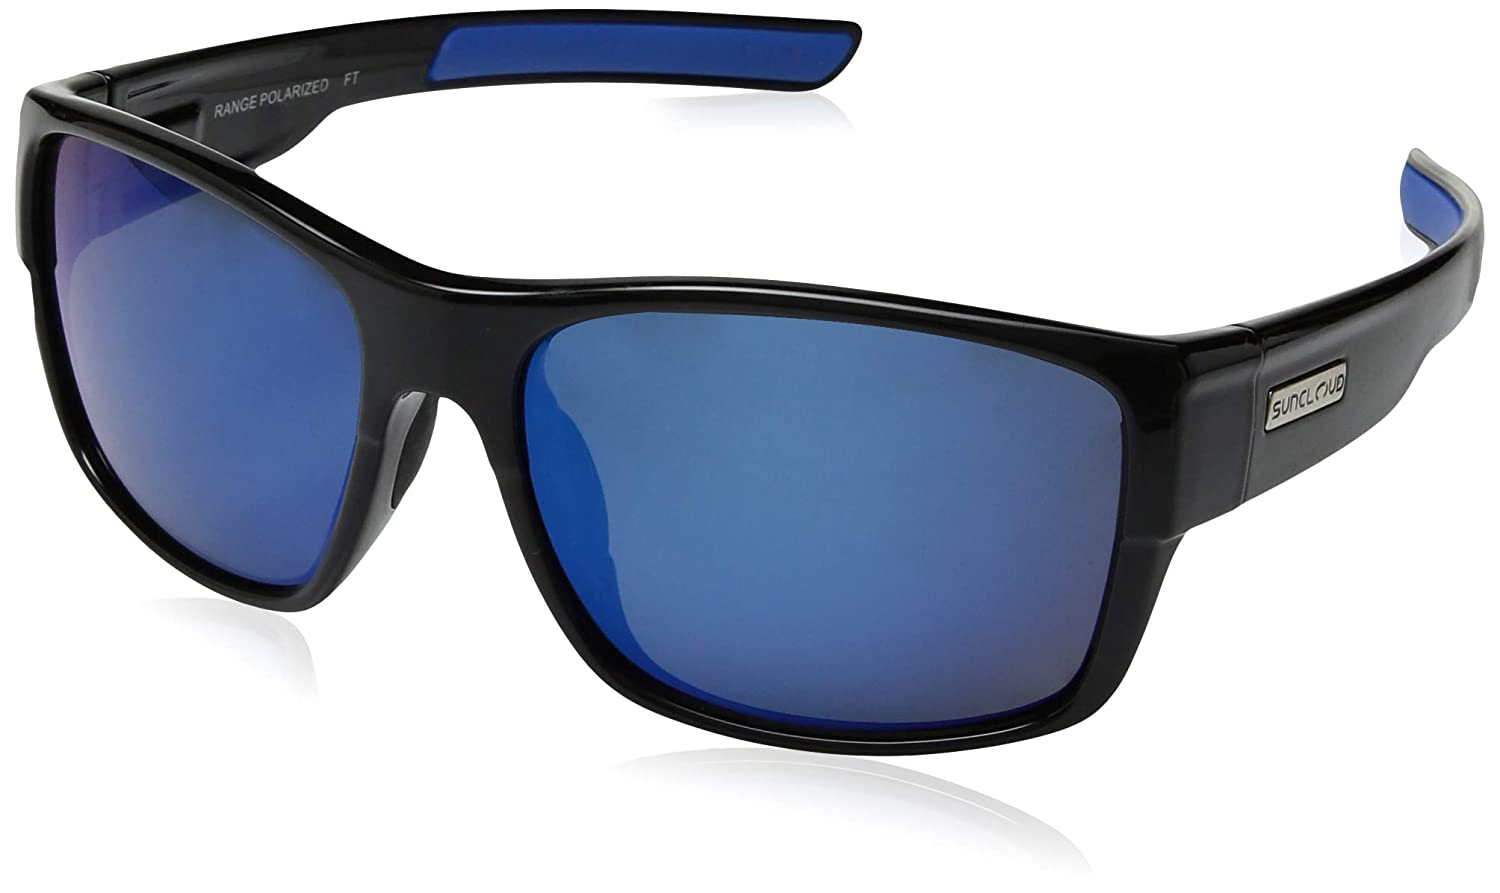 8b6b40919e7 Amazon.com  Suncloud Range Polarized Sunglasses